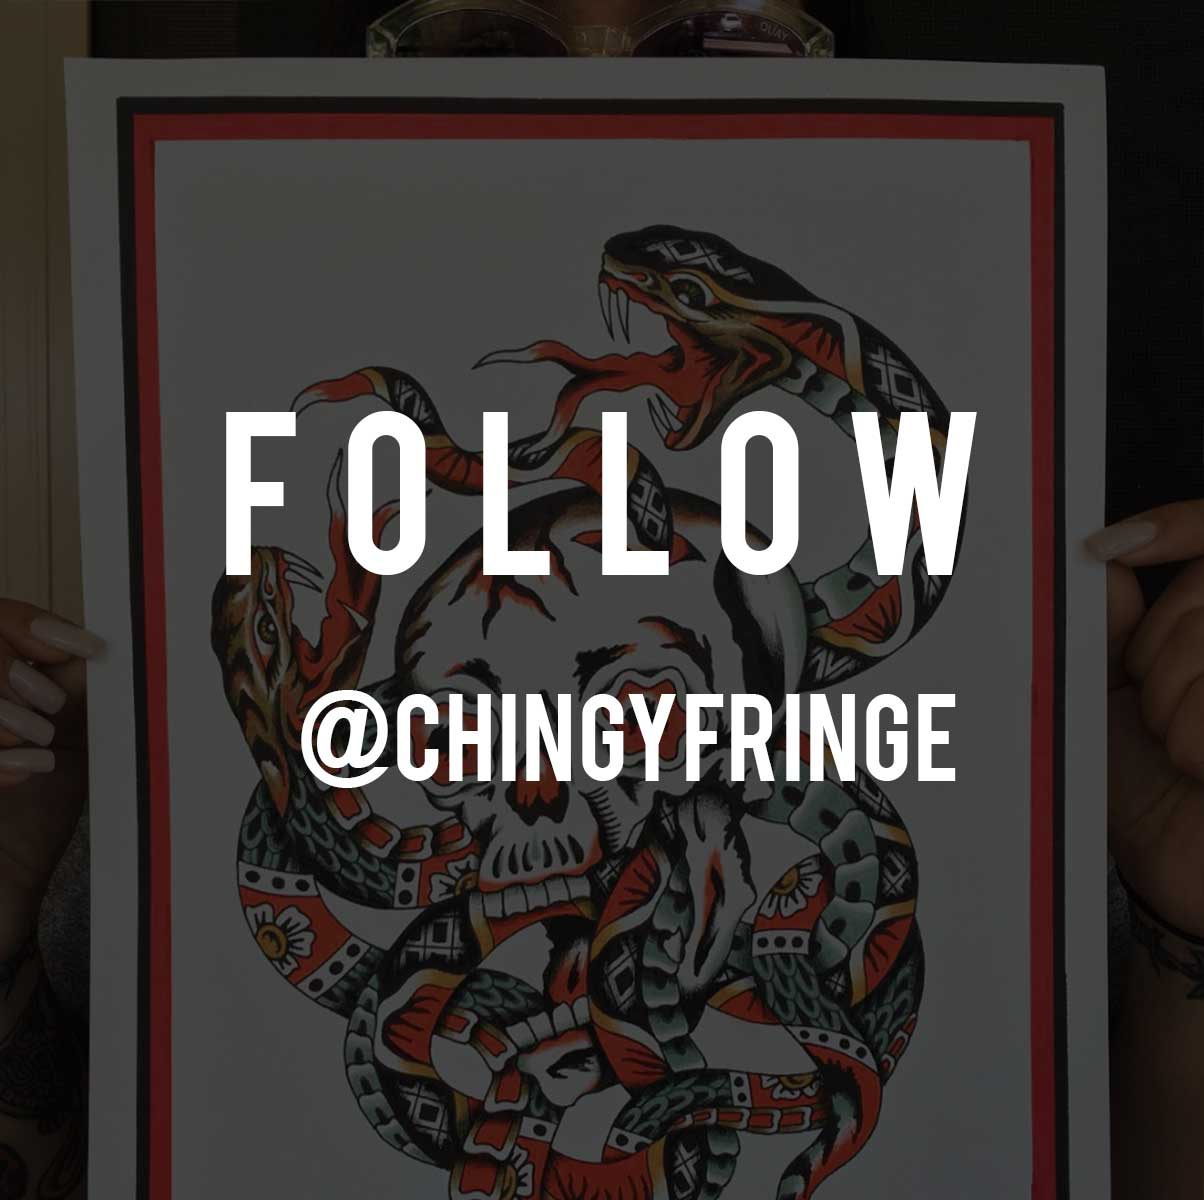 FOLLOW - CHINGY FRINGE